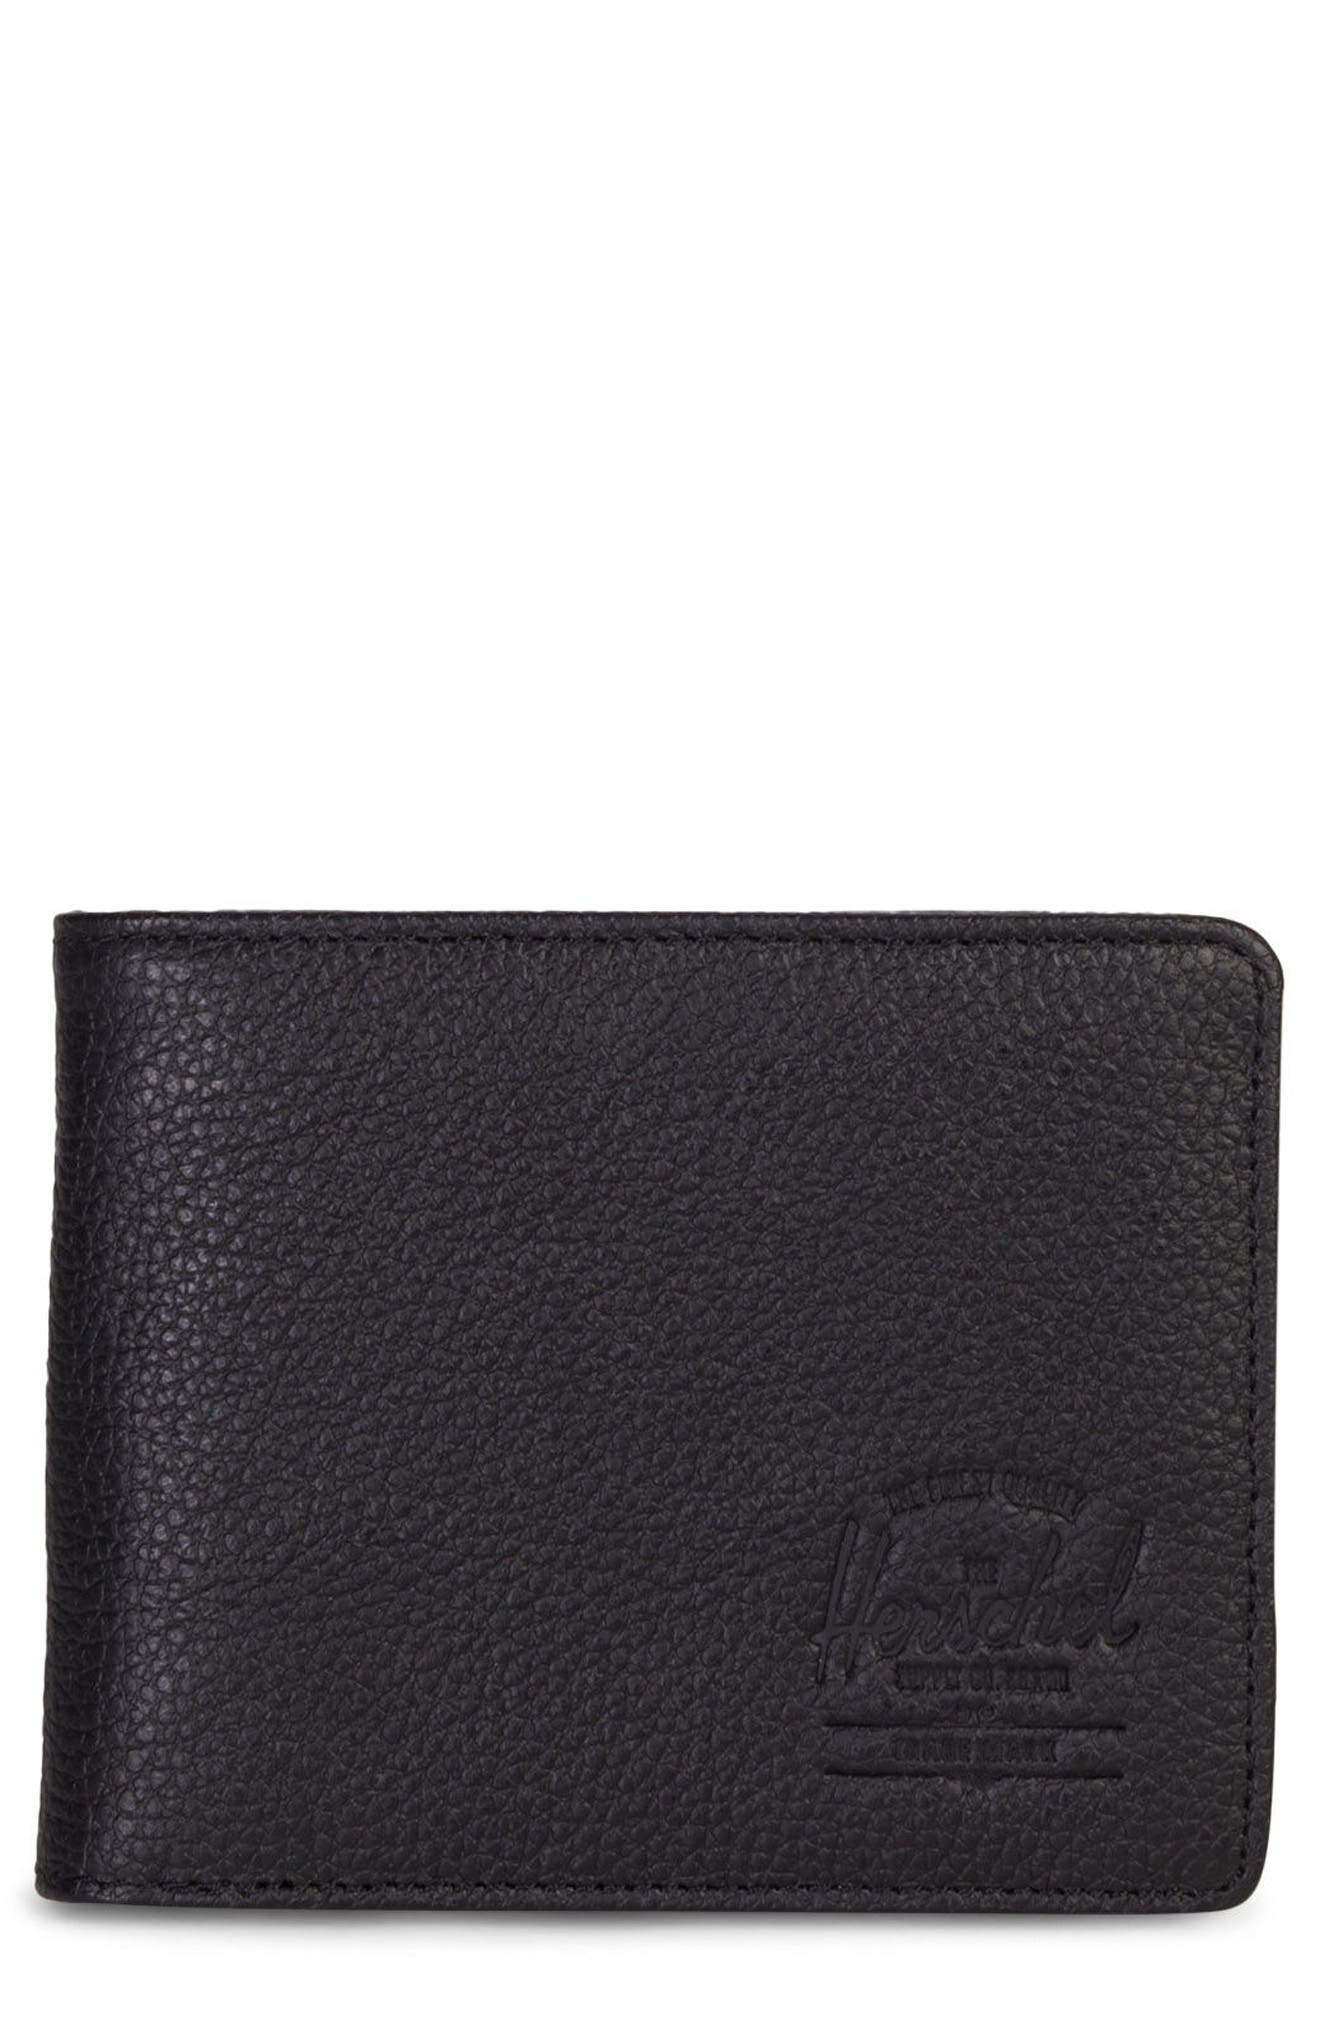 Hank Leather Wallet,                         Main,                         color, 005